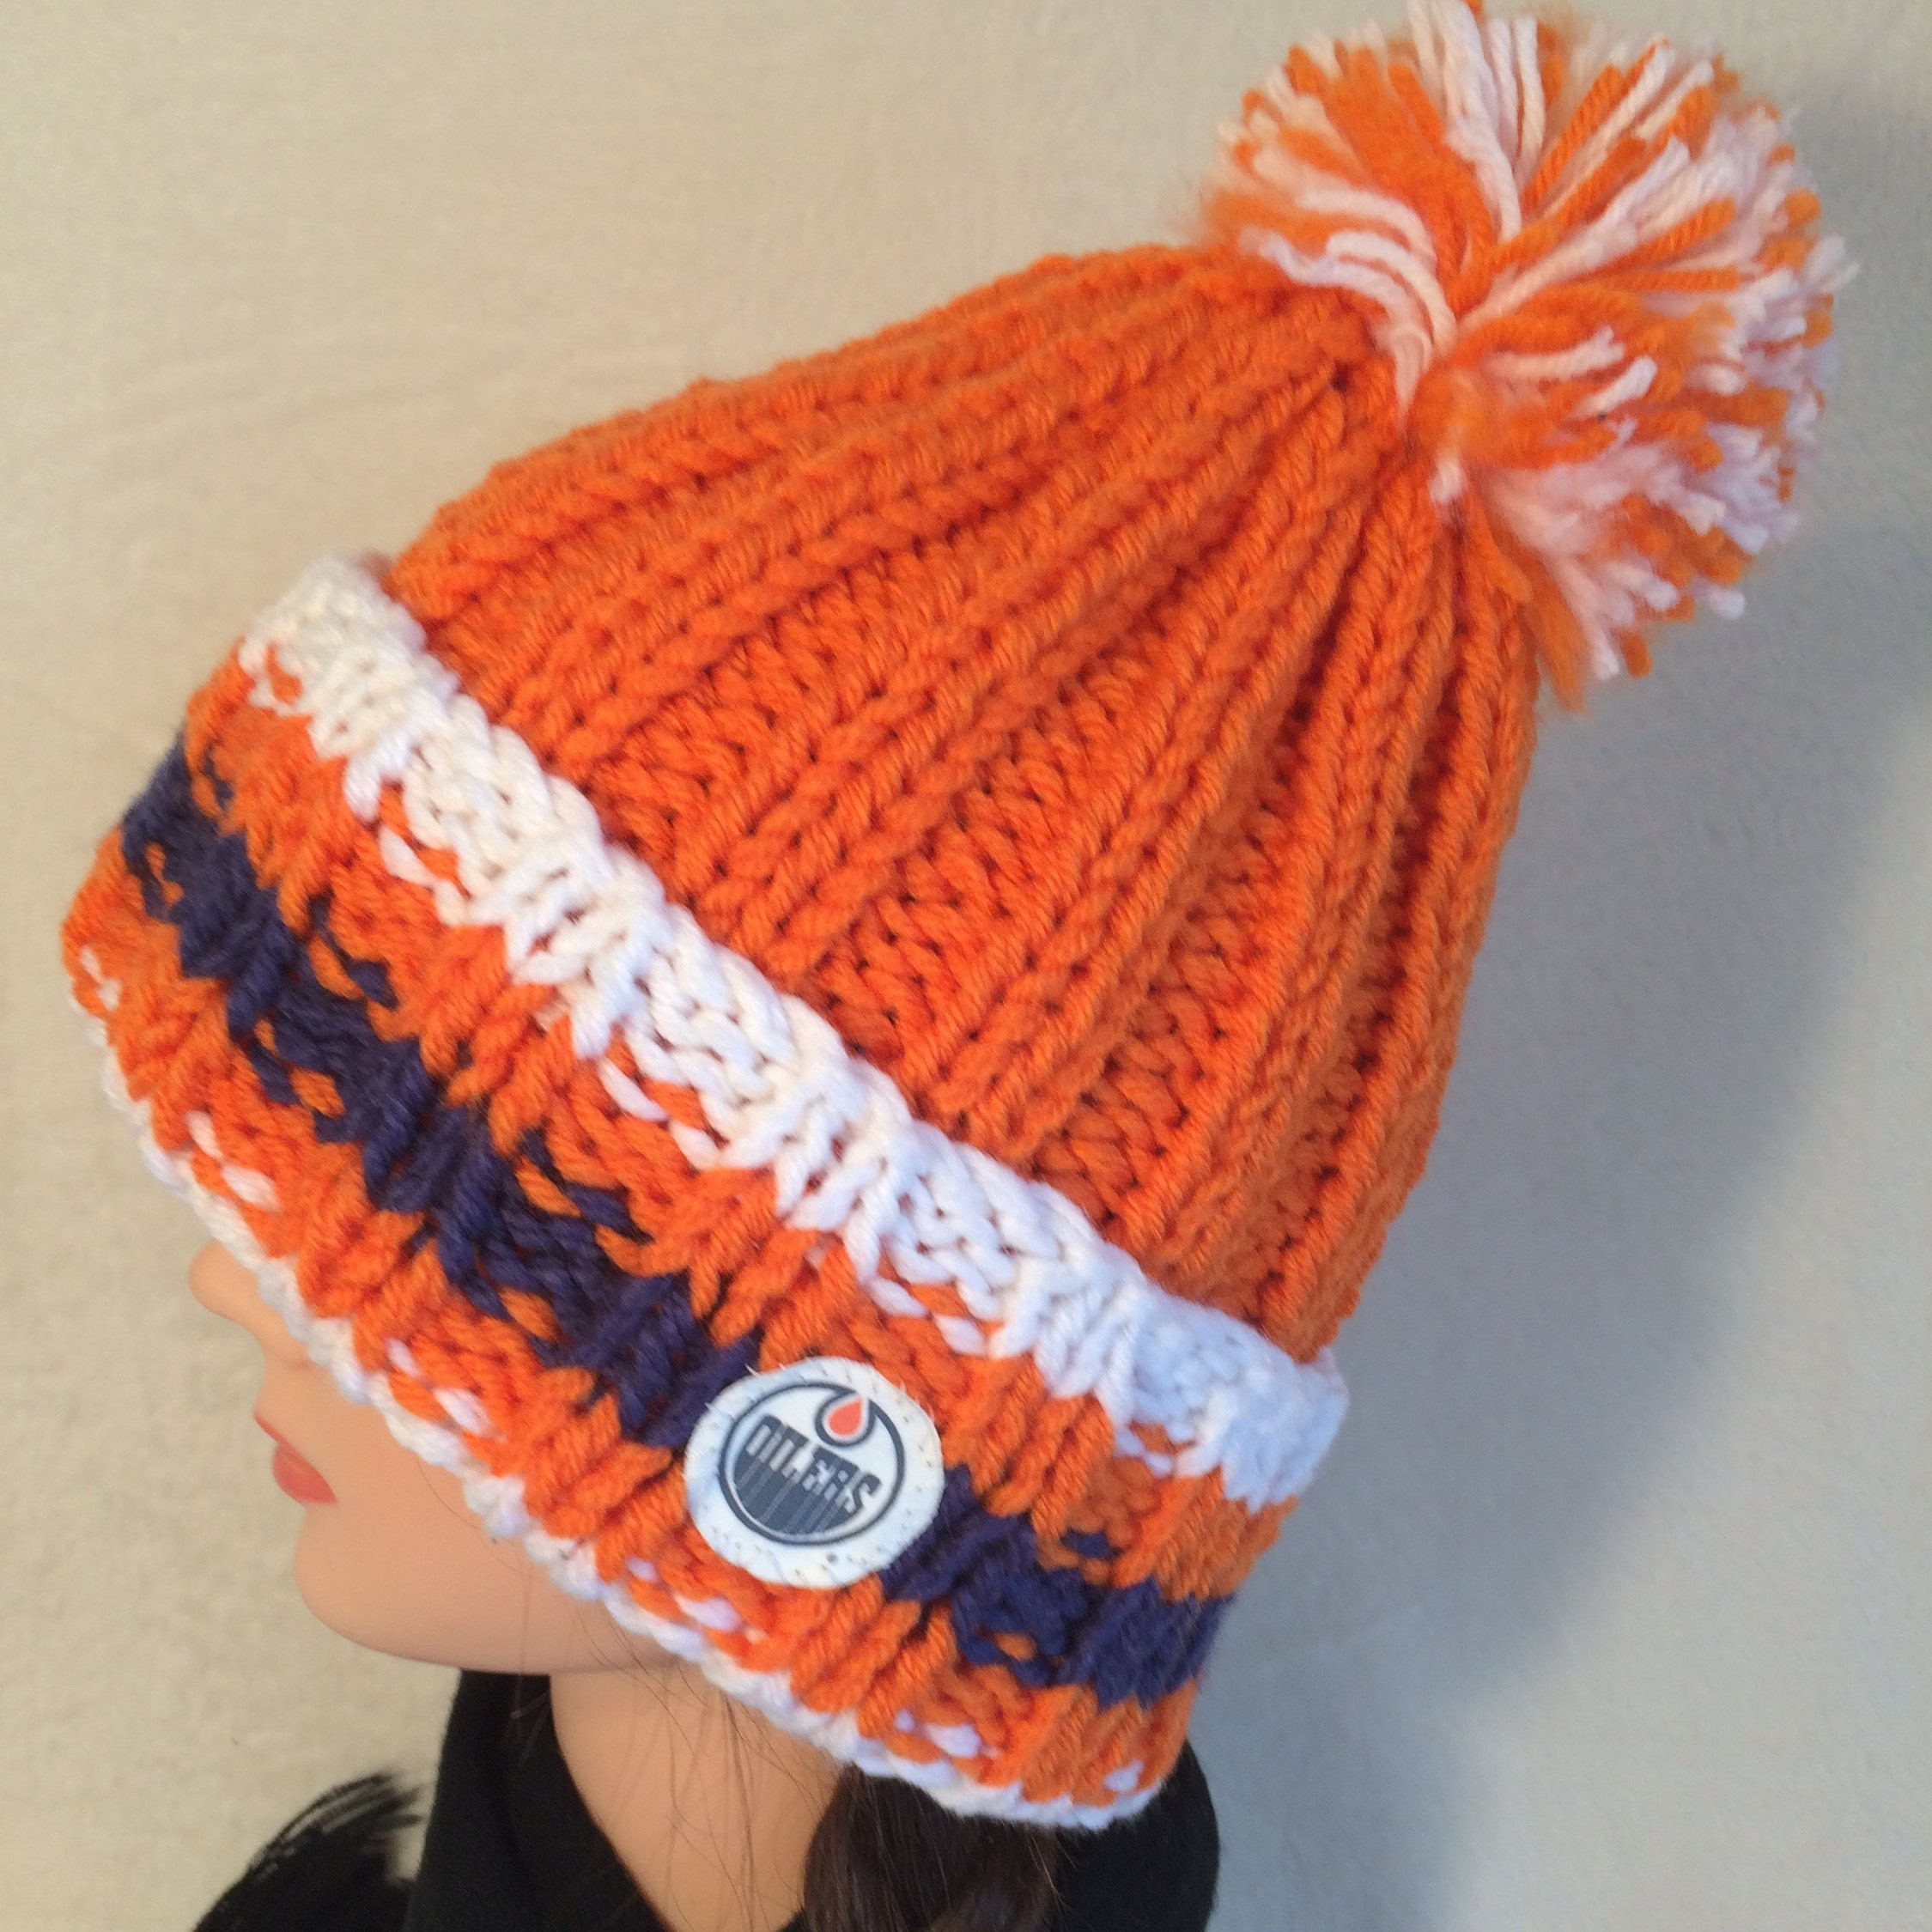 Edmonton Oilers hat Hockey hat Chunky knit hat Hand knit  f4703d6cdd4